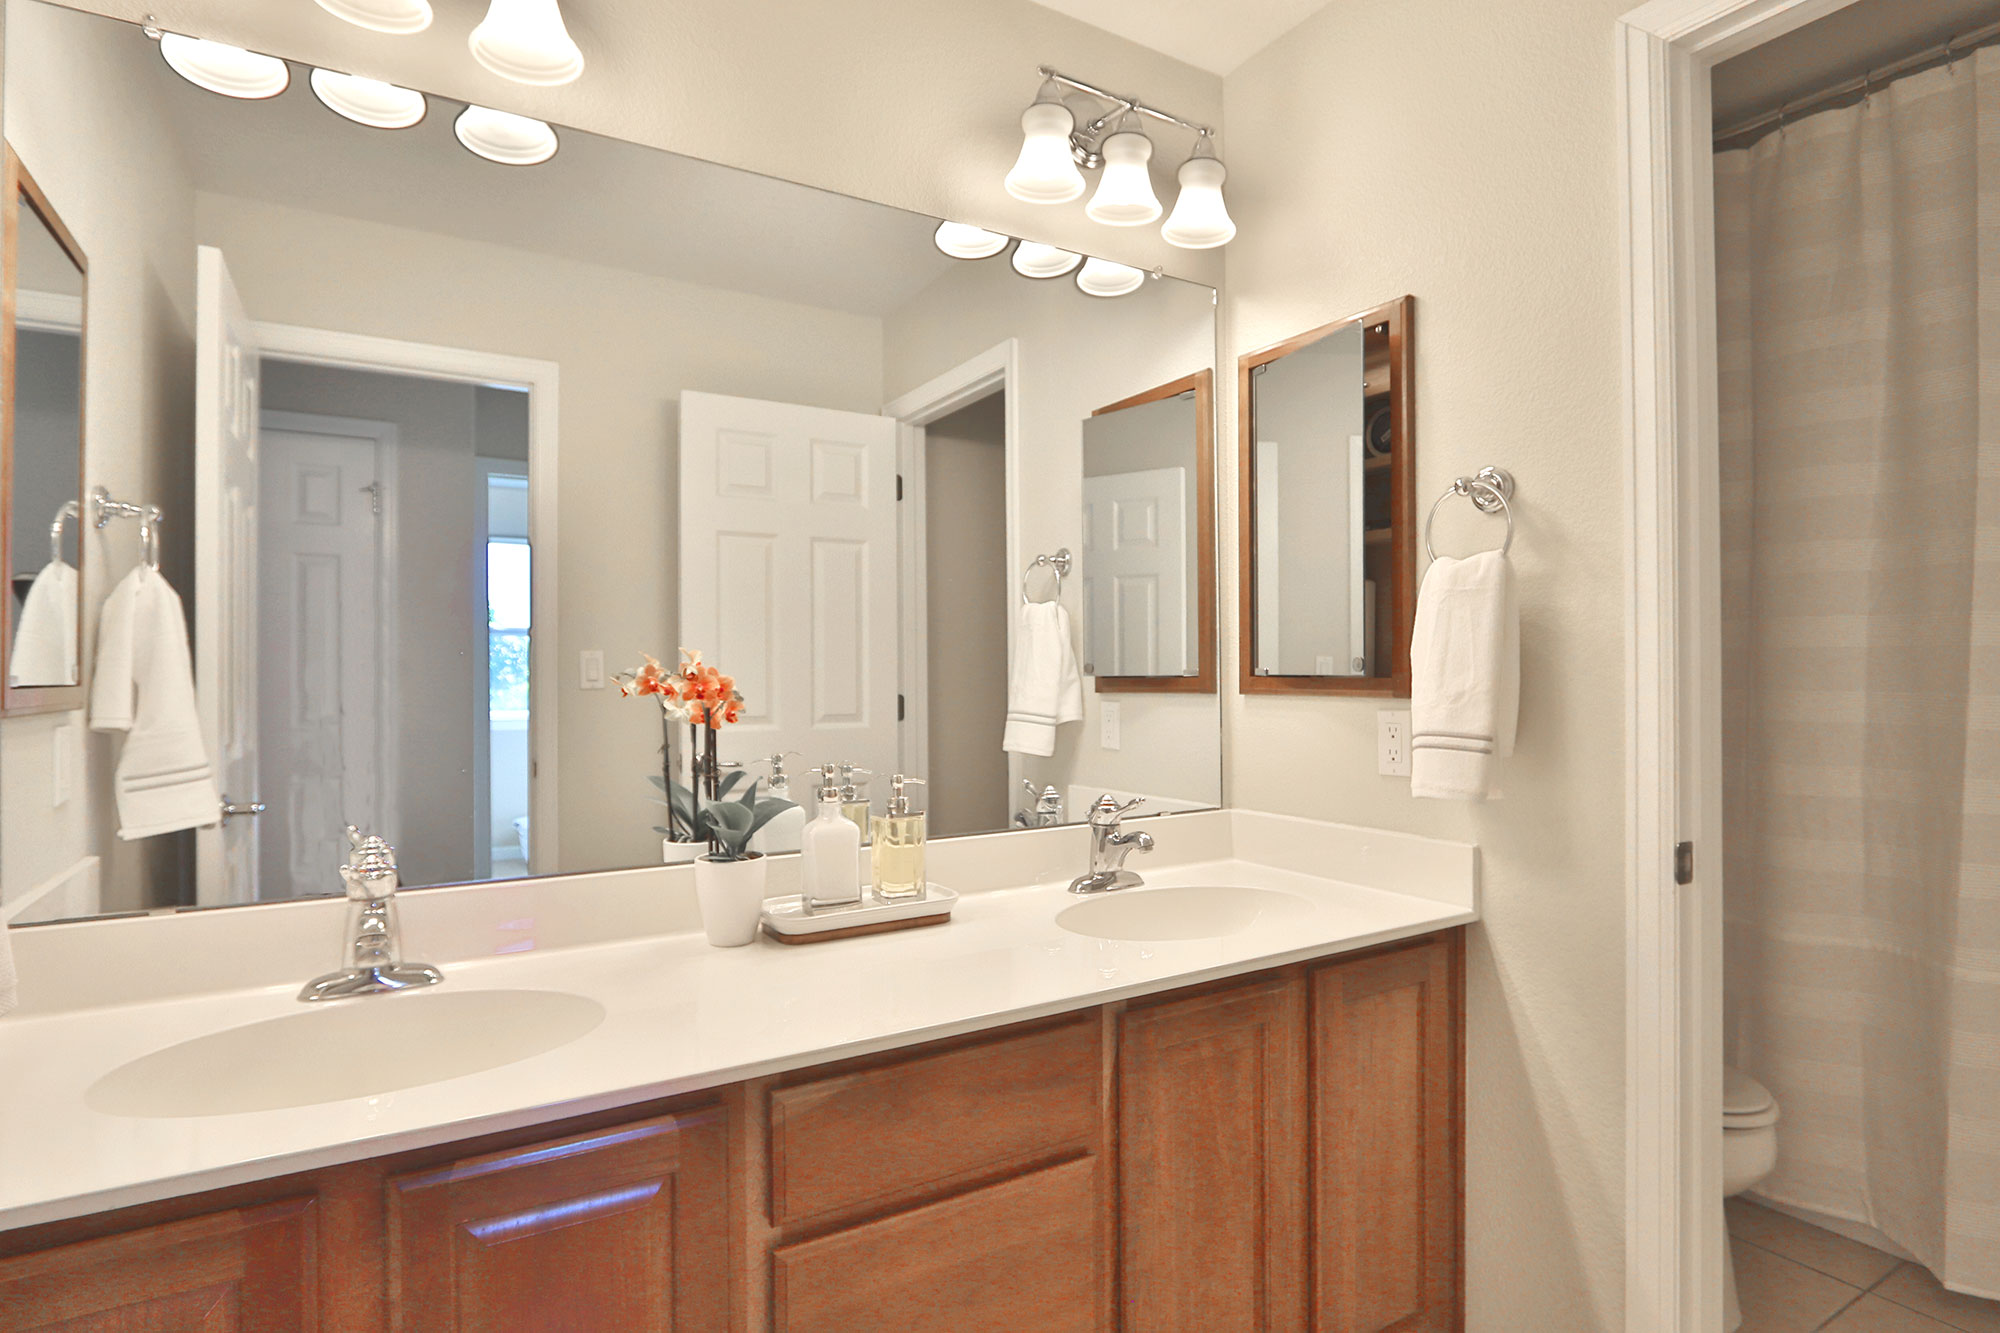 Elegant second double sink bathroom | 435 Paseo Roja Place, Rio Rancho Home  for Sale